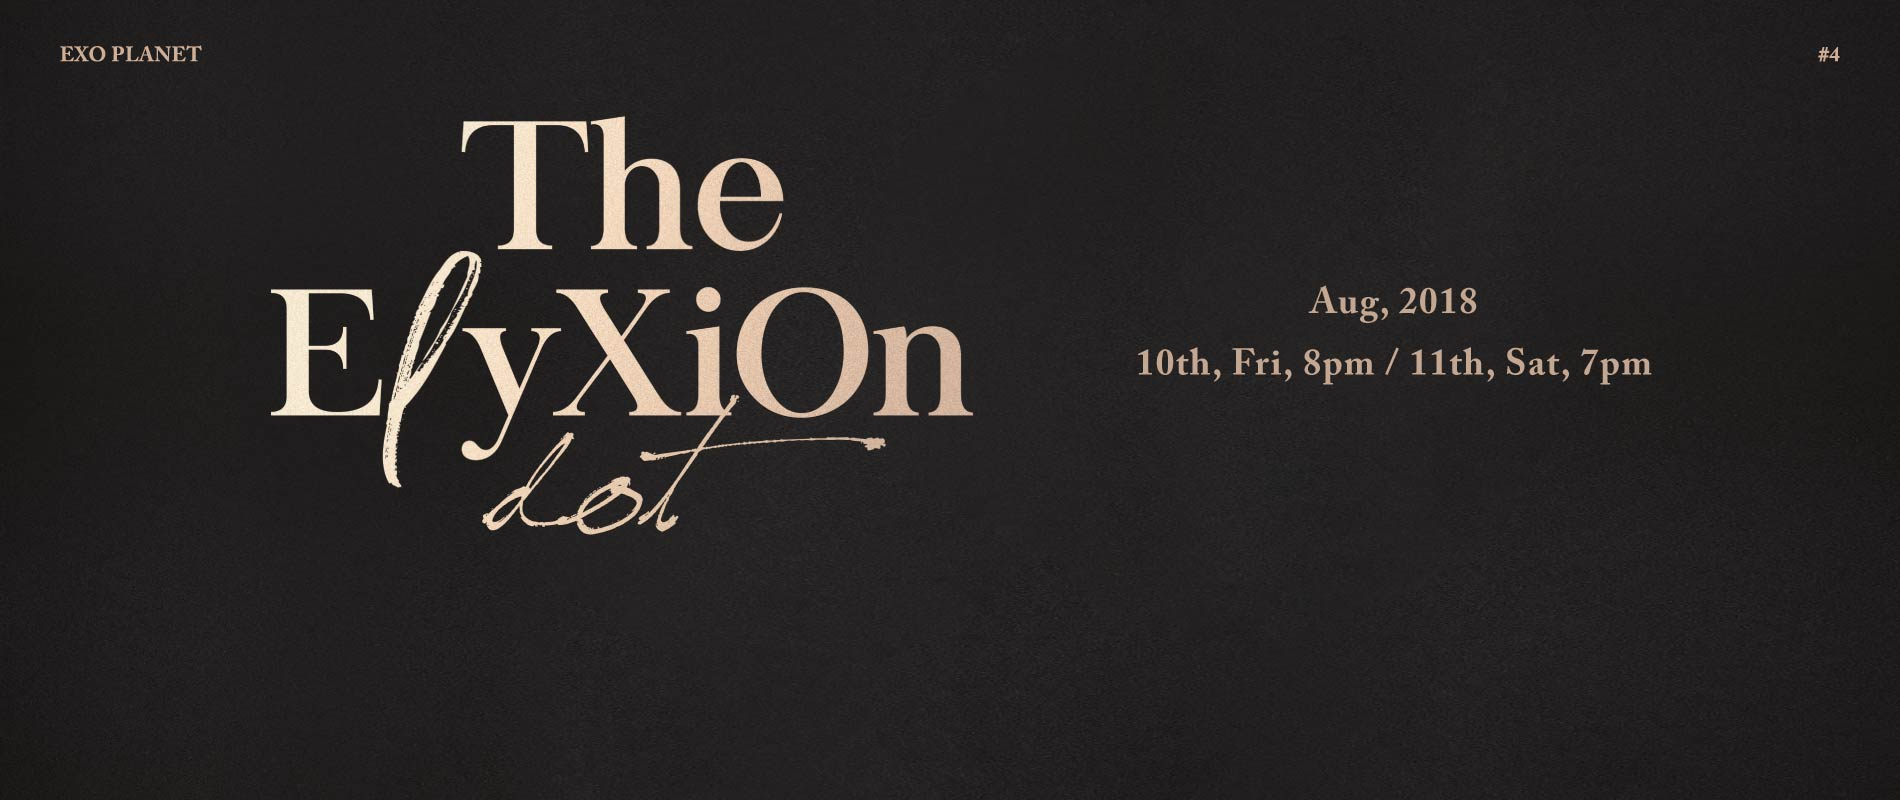 Exo Planet 4 The Eℓyxion Dot In Macao